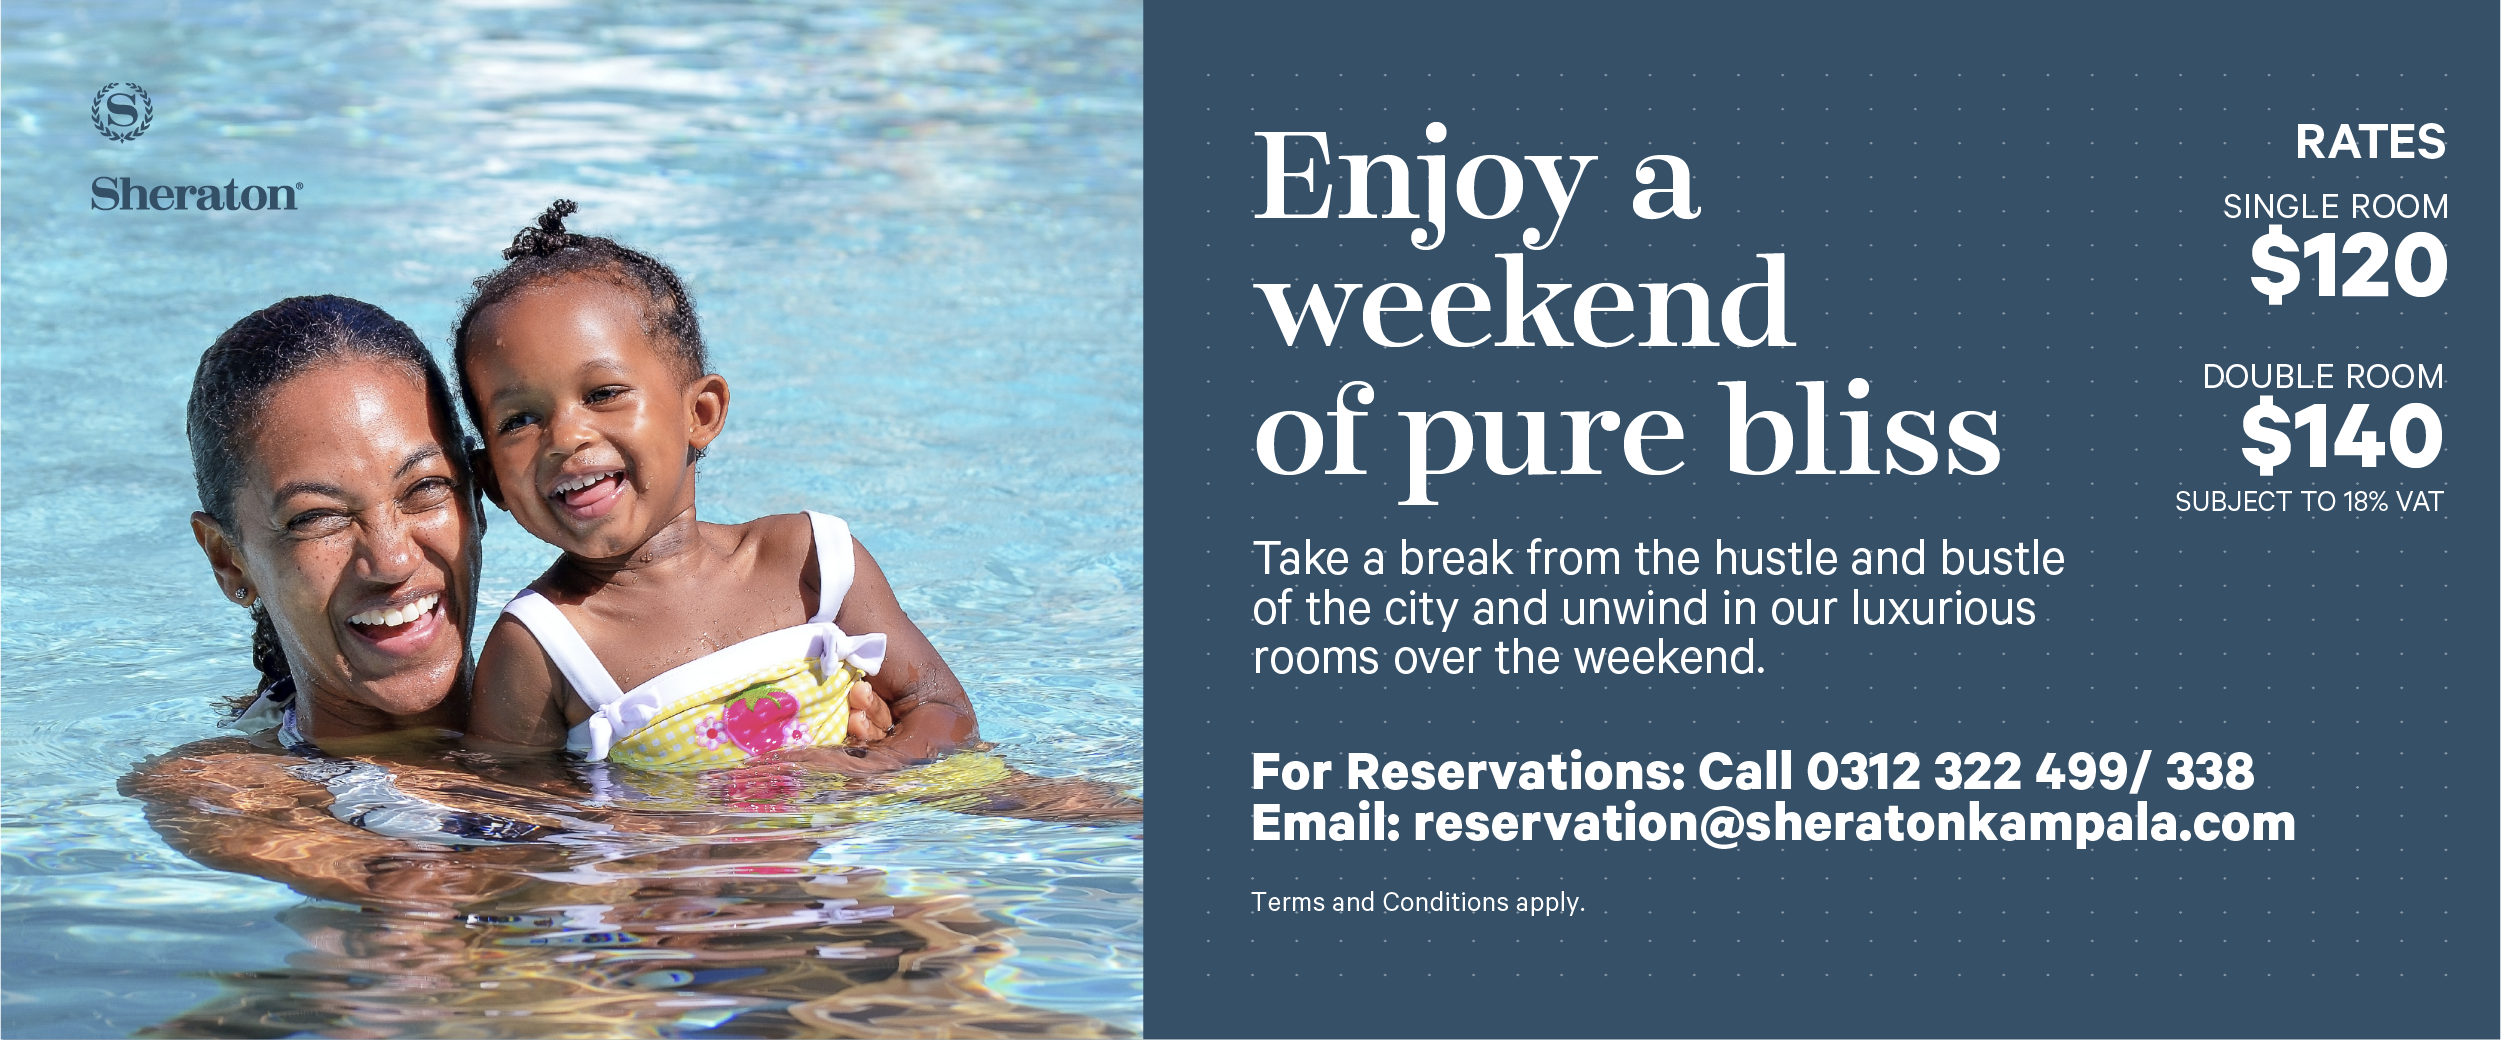 Try a weekend 'Staycation' at the Sheraton Hotel Kampala